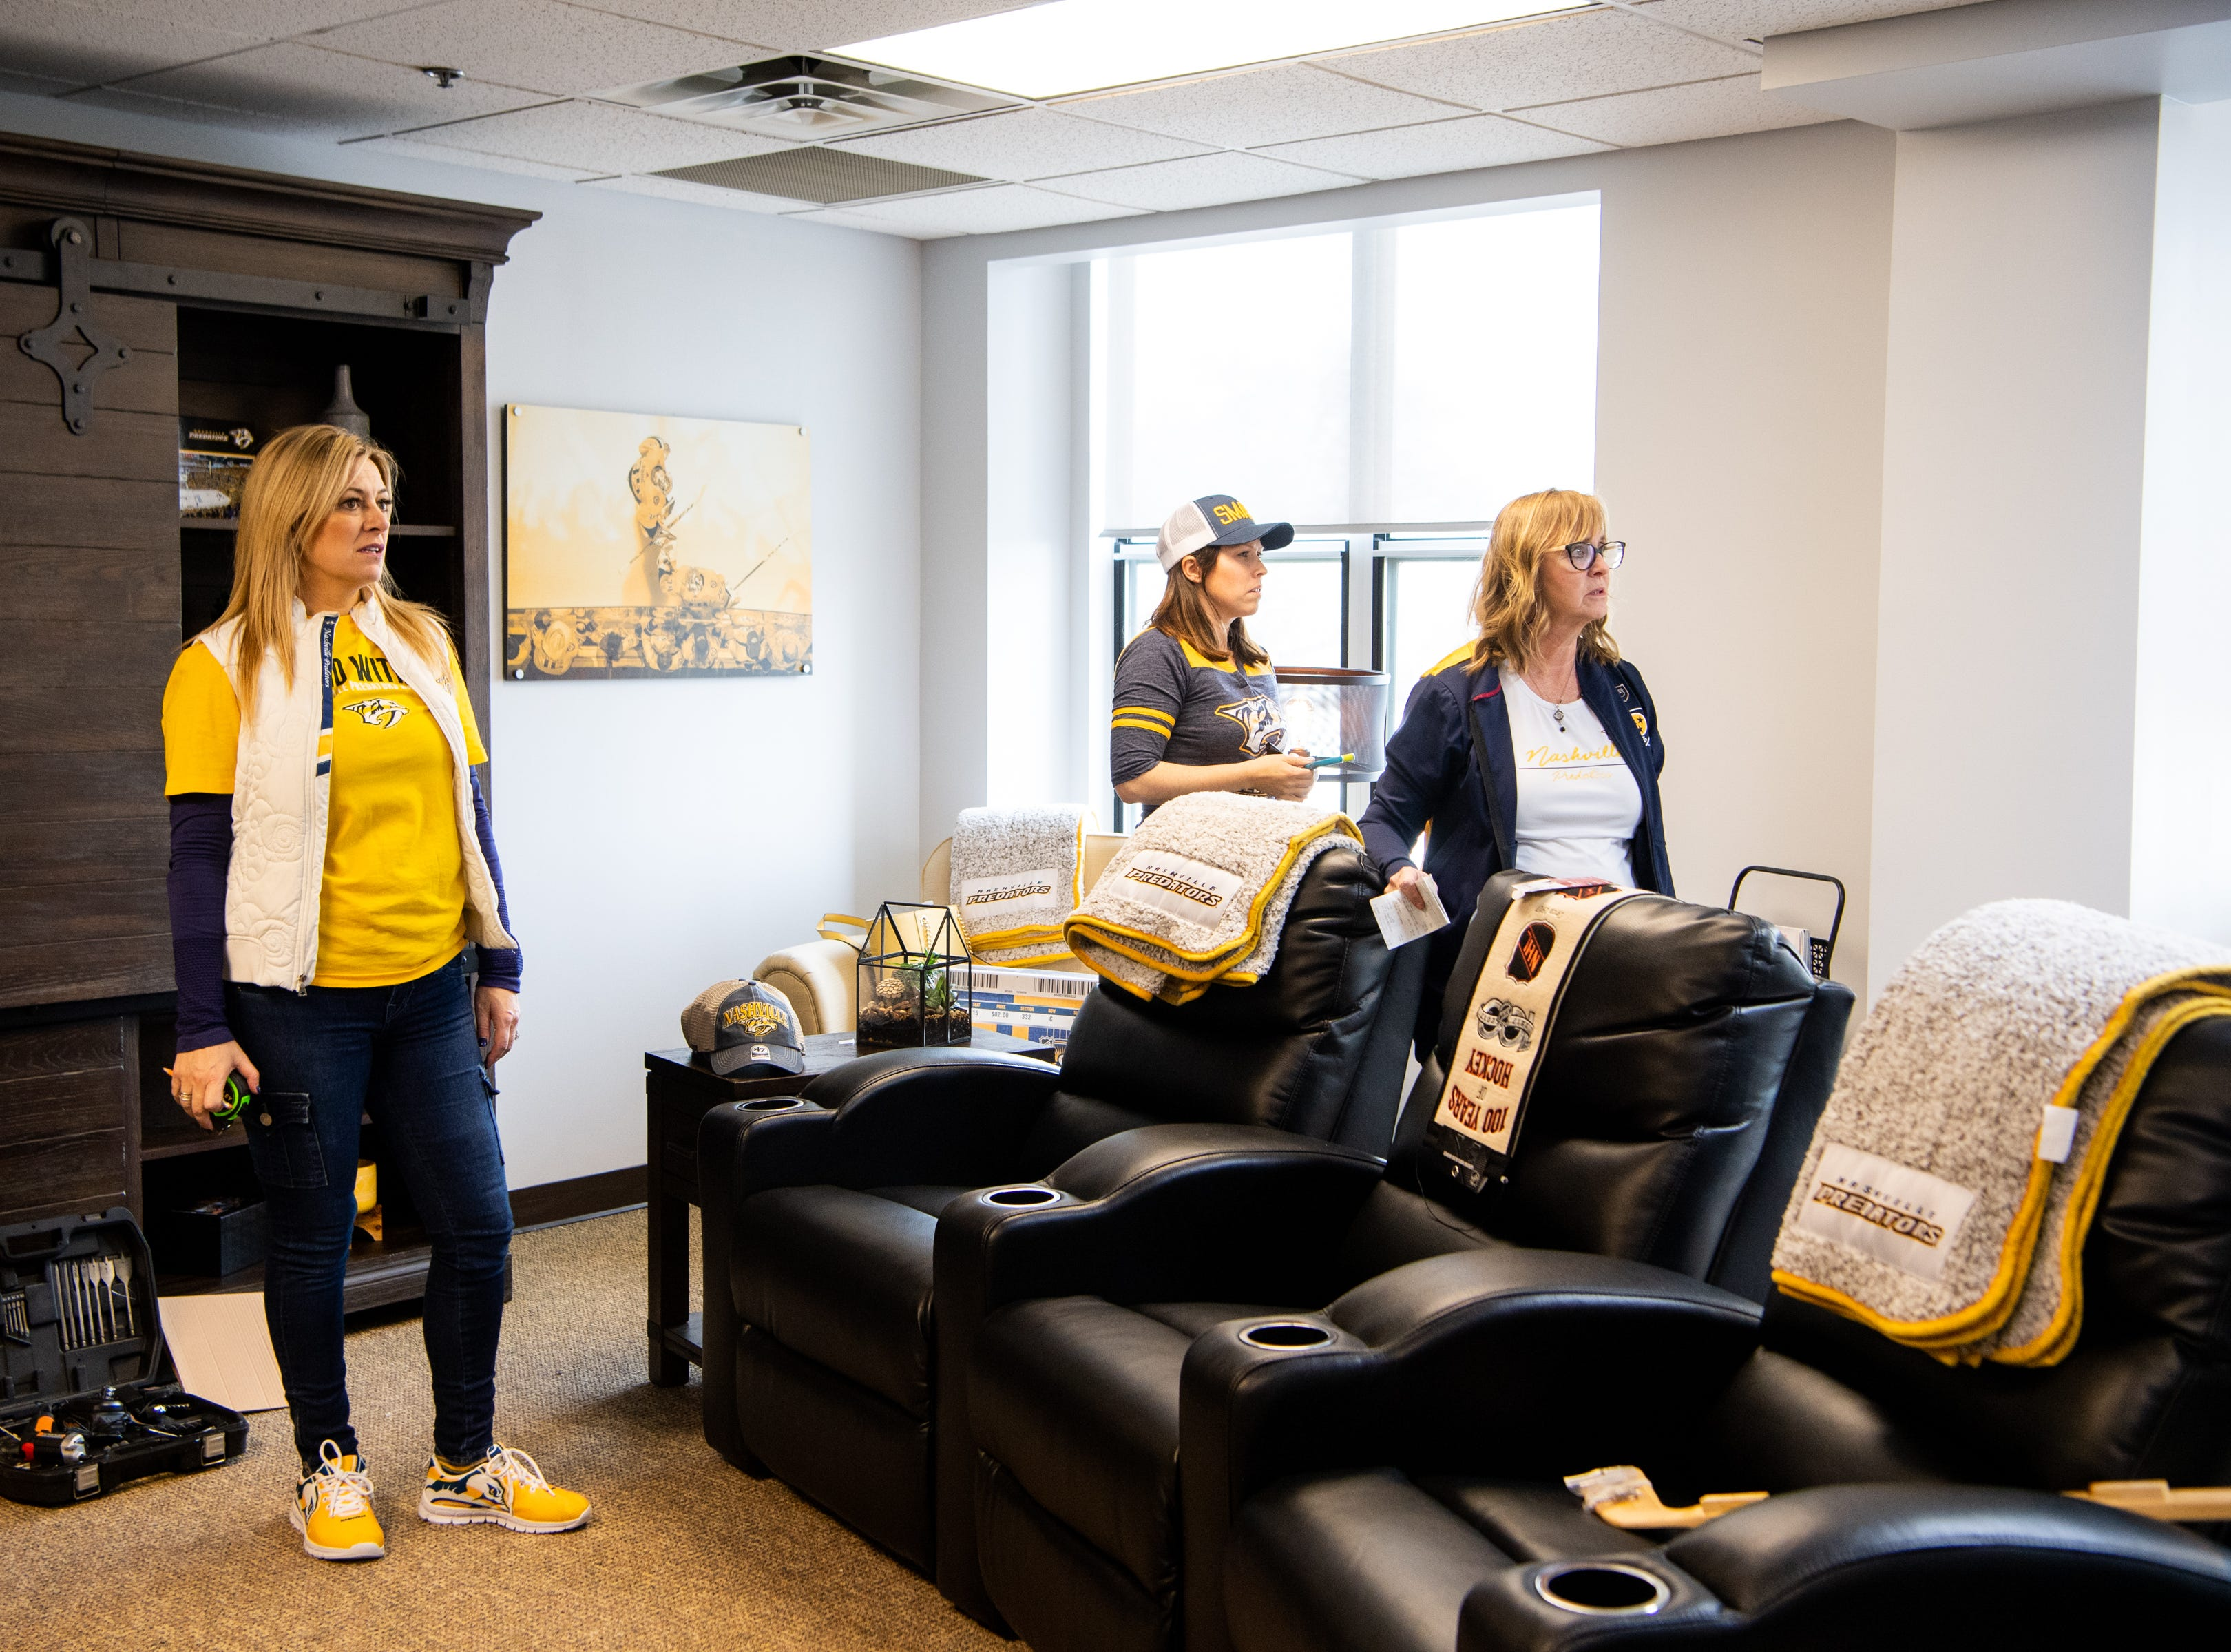 Kristen Laviolette, Maureen Muse and Rhonda McCarthy examine the hung photos while making over the entertainment room at Memorial Foundation Hope Lodge as a project for the wives, girlfriends and fiancees of the Nashville Predators Tuesday, March 12, 2019, in Nashville, Tenn.